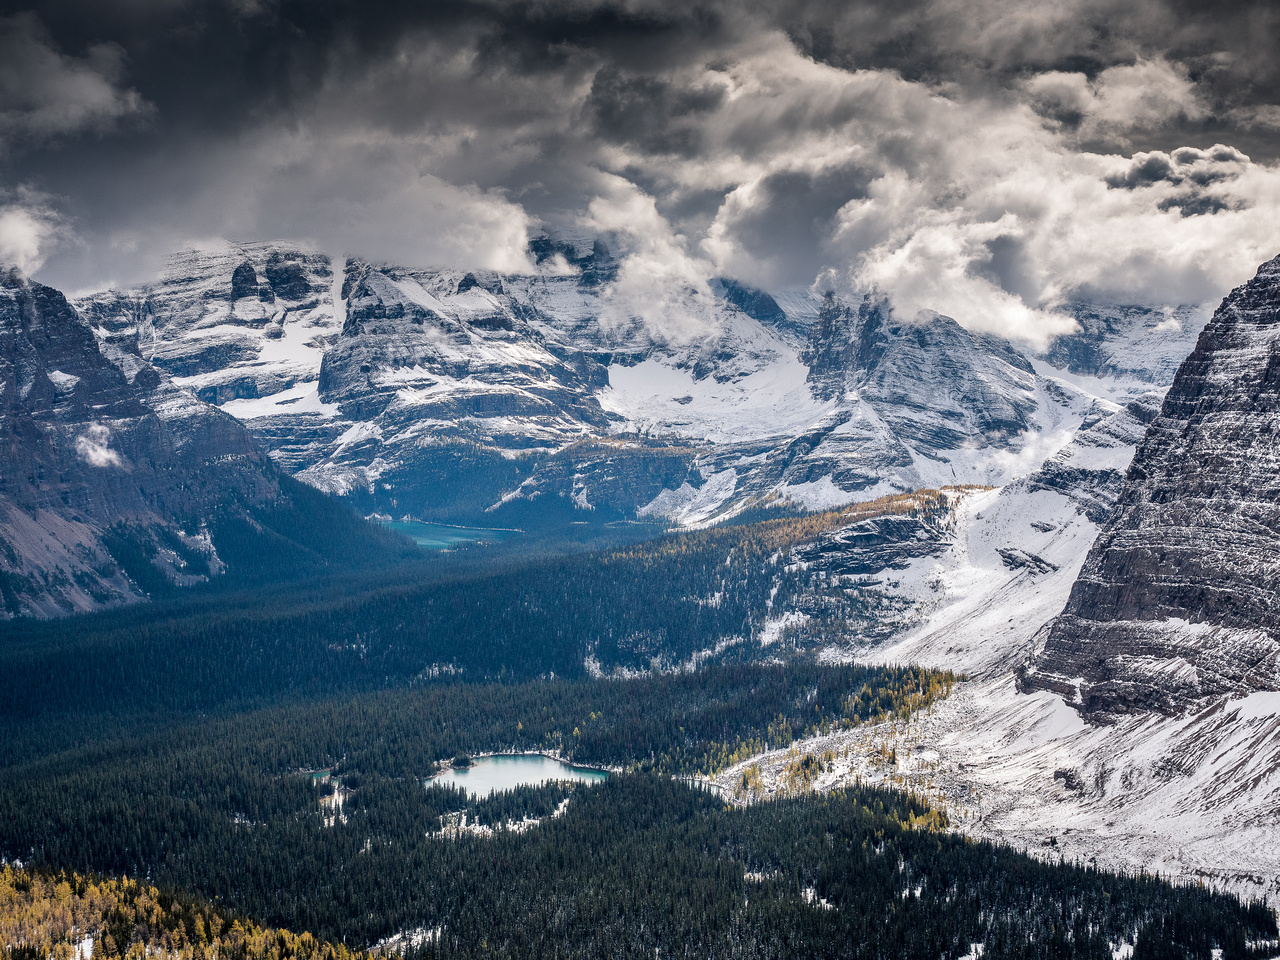 Looking over Linda Lake towards Lake O'Hara with Hungabee and other giant peaks rising into the clouds beyond.